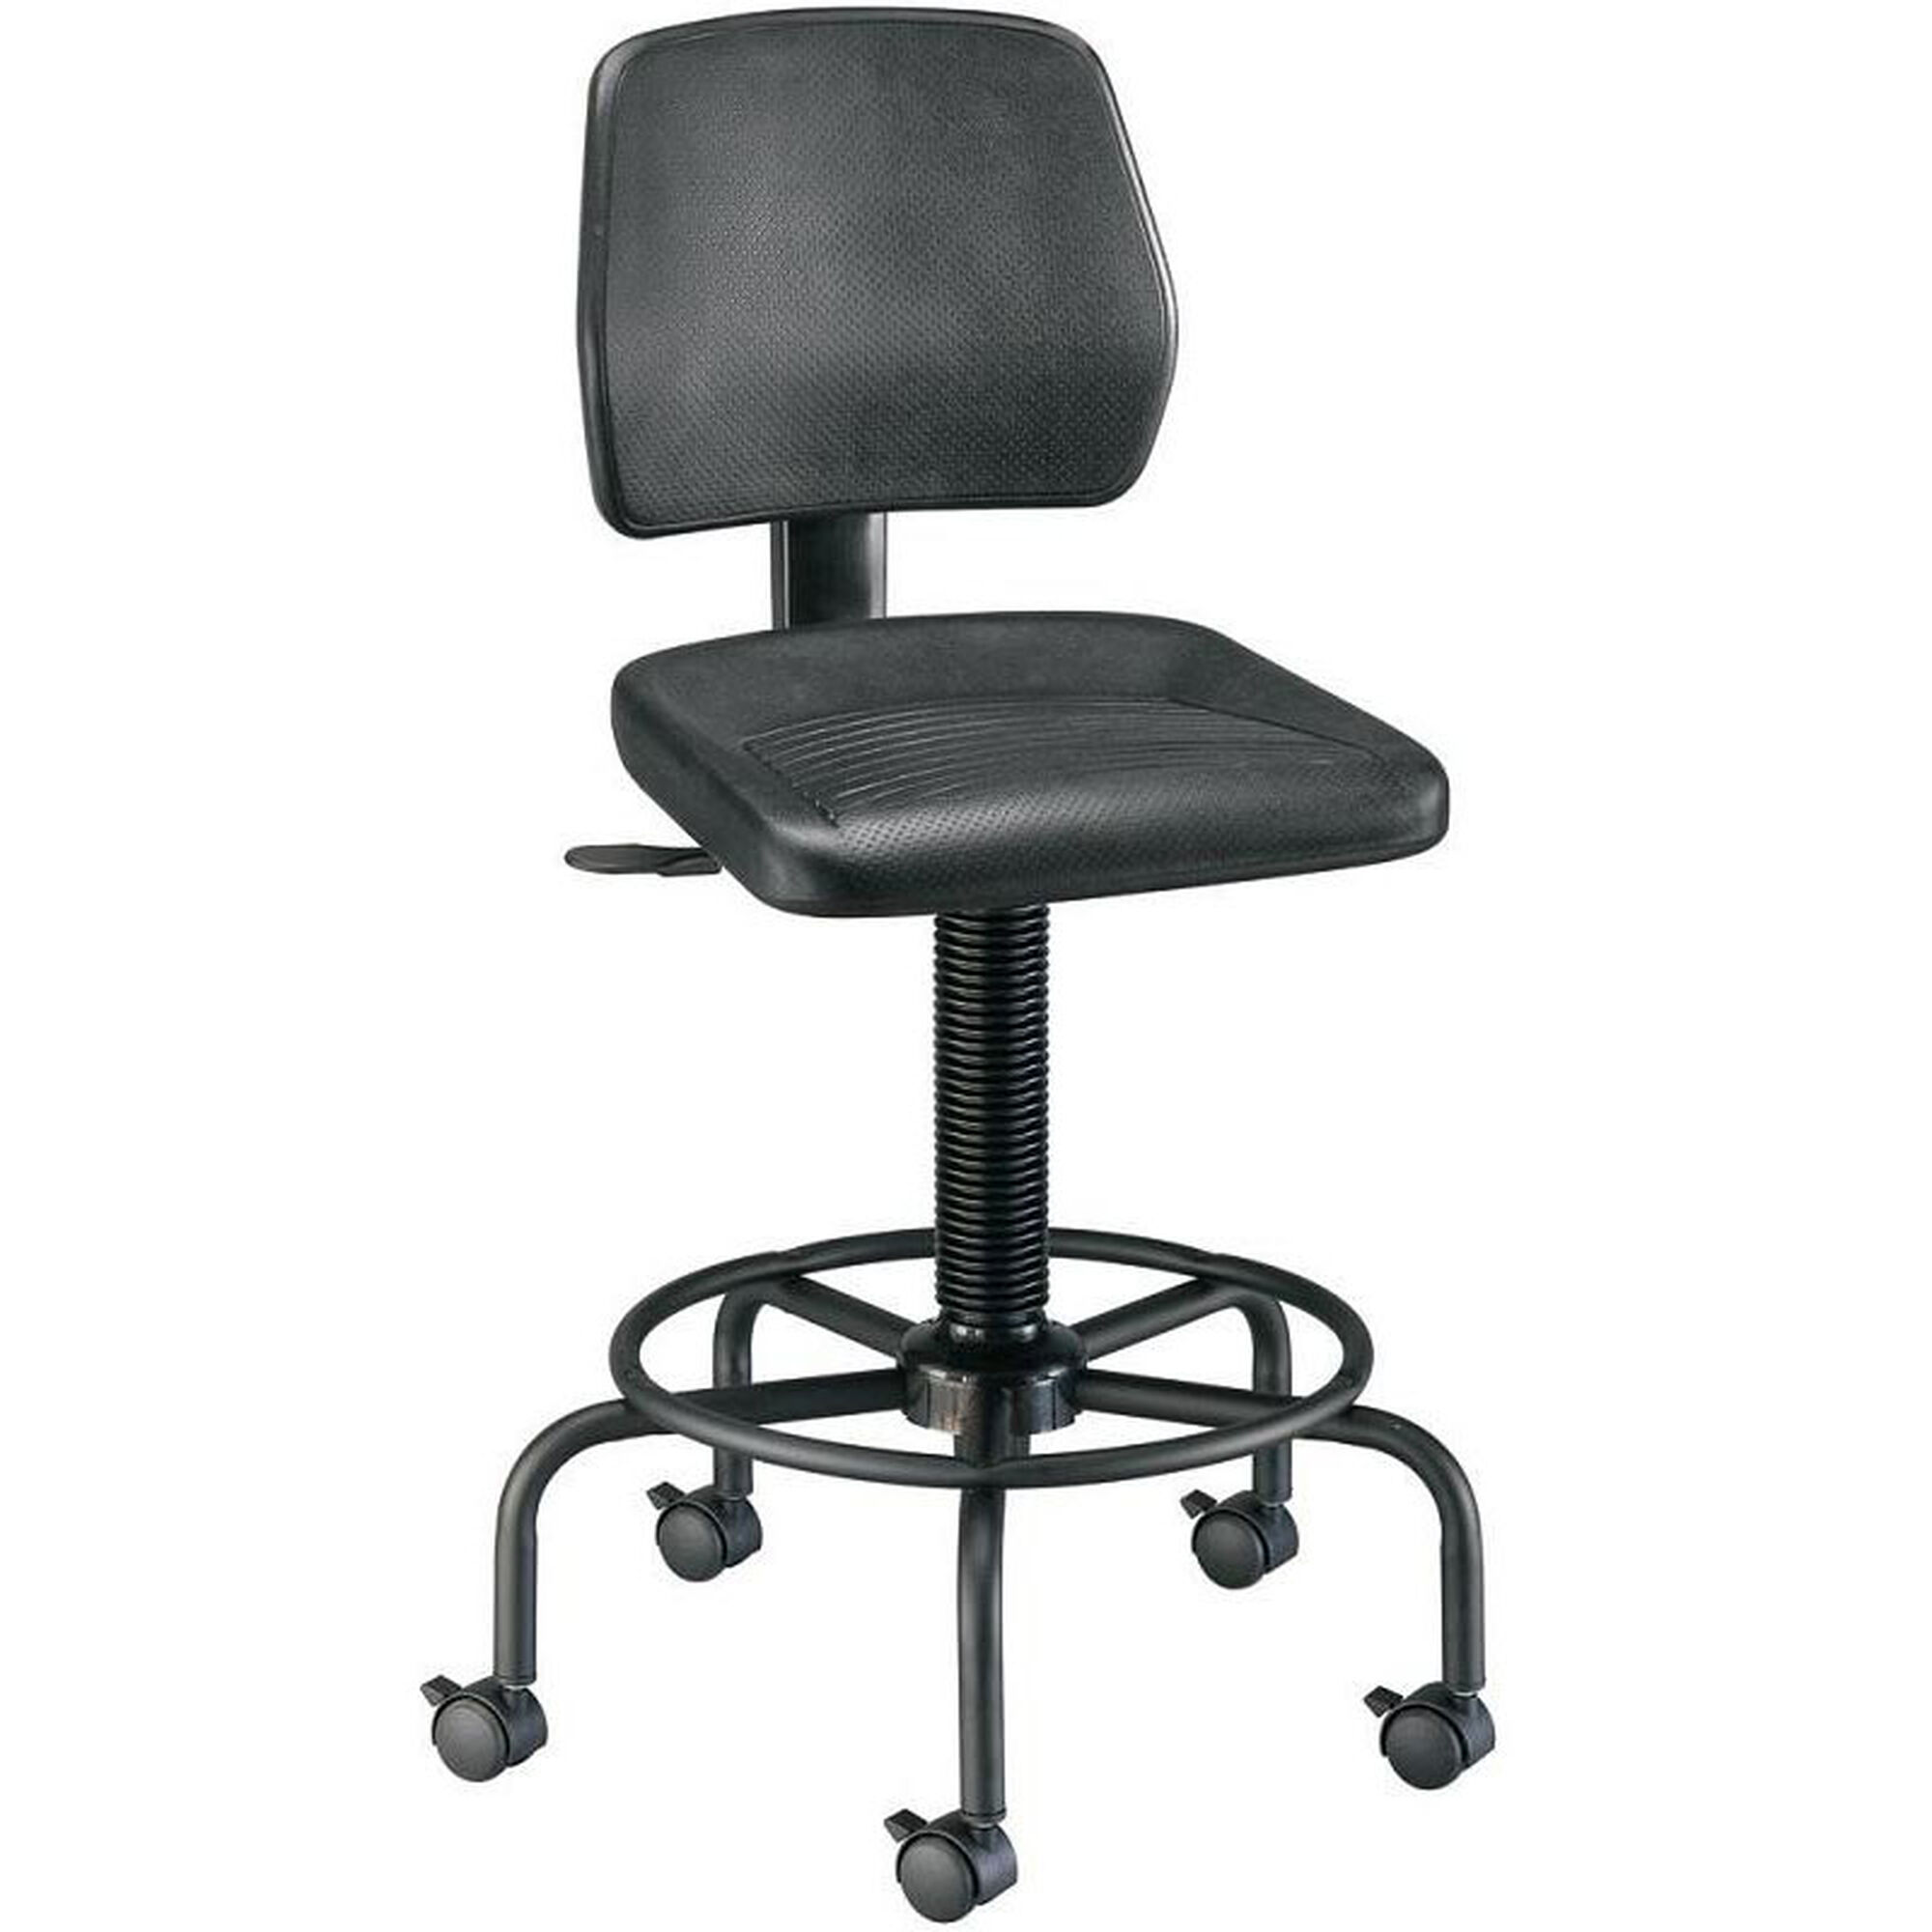 Our Adjustable Height Utility Stool With Backrest Black